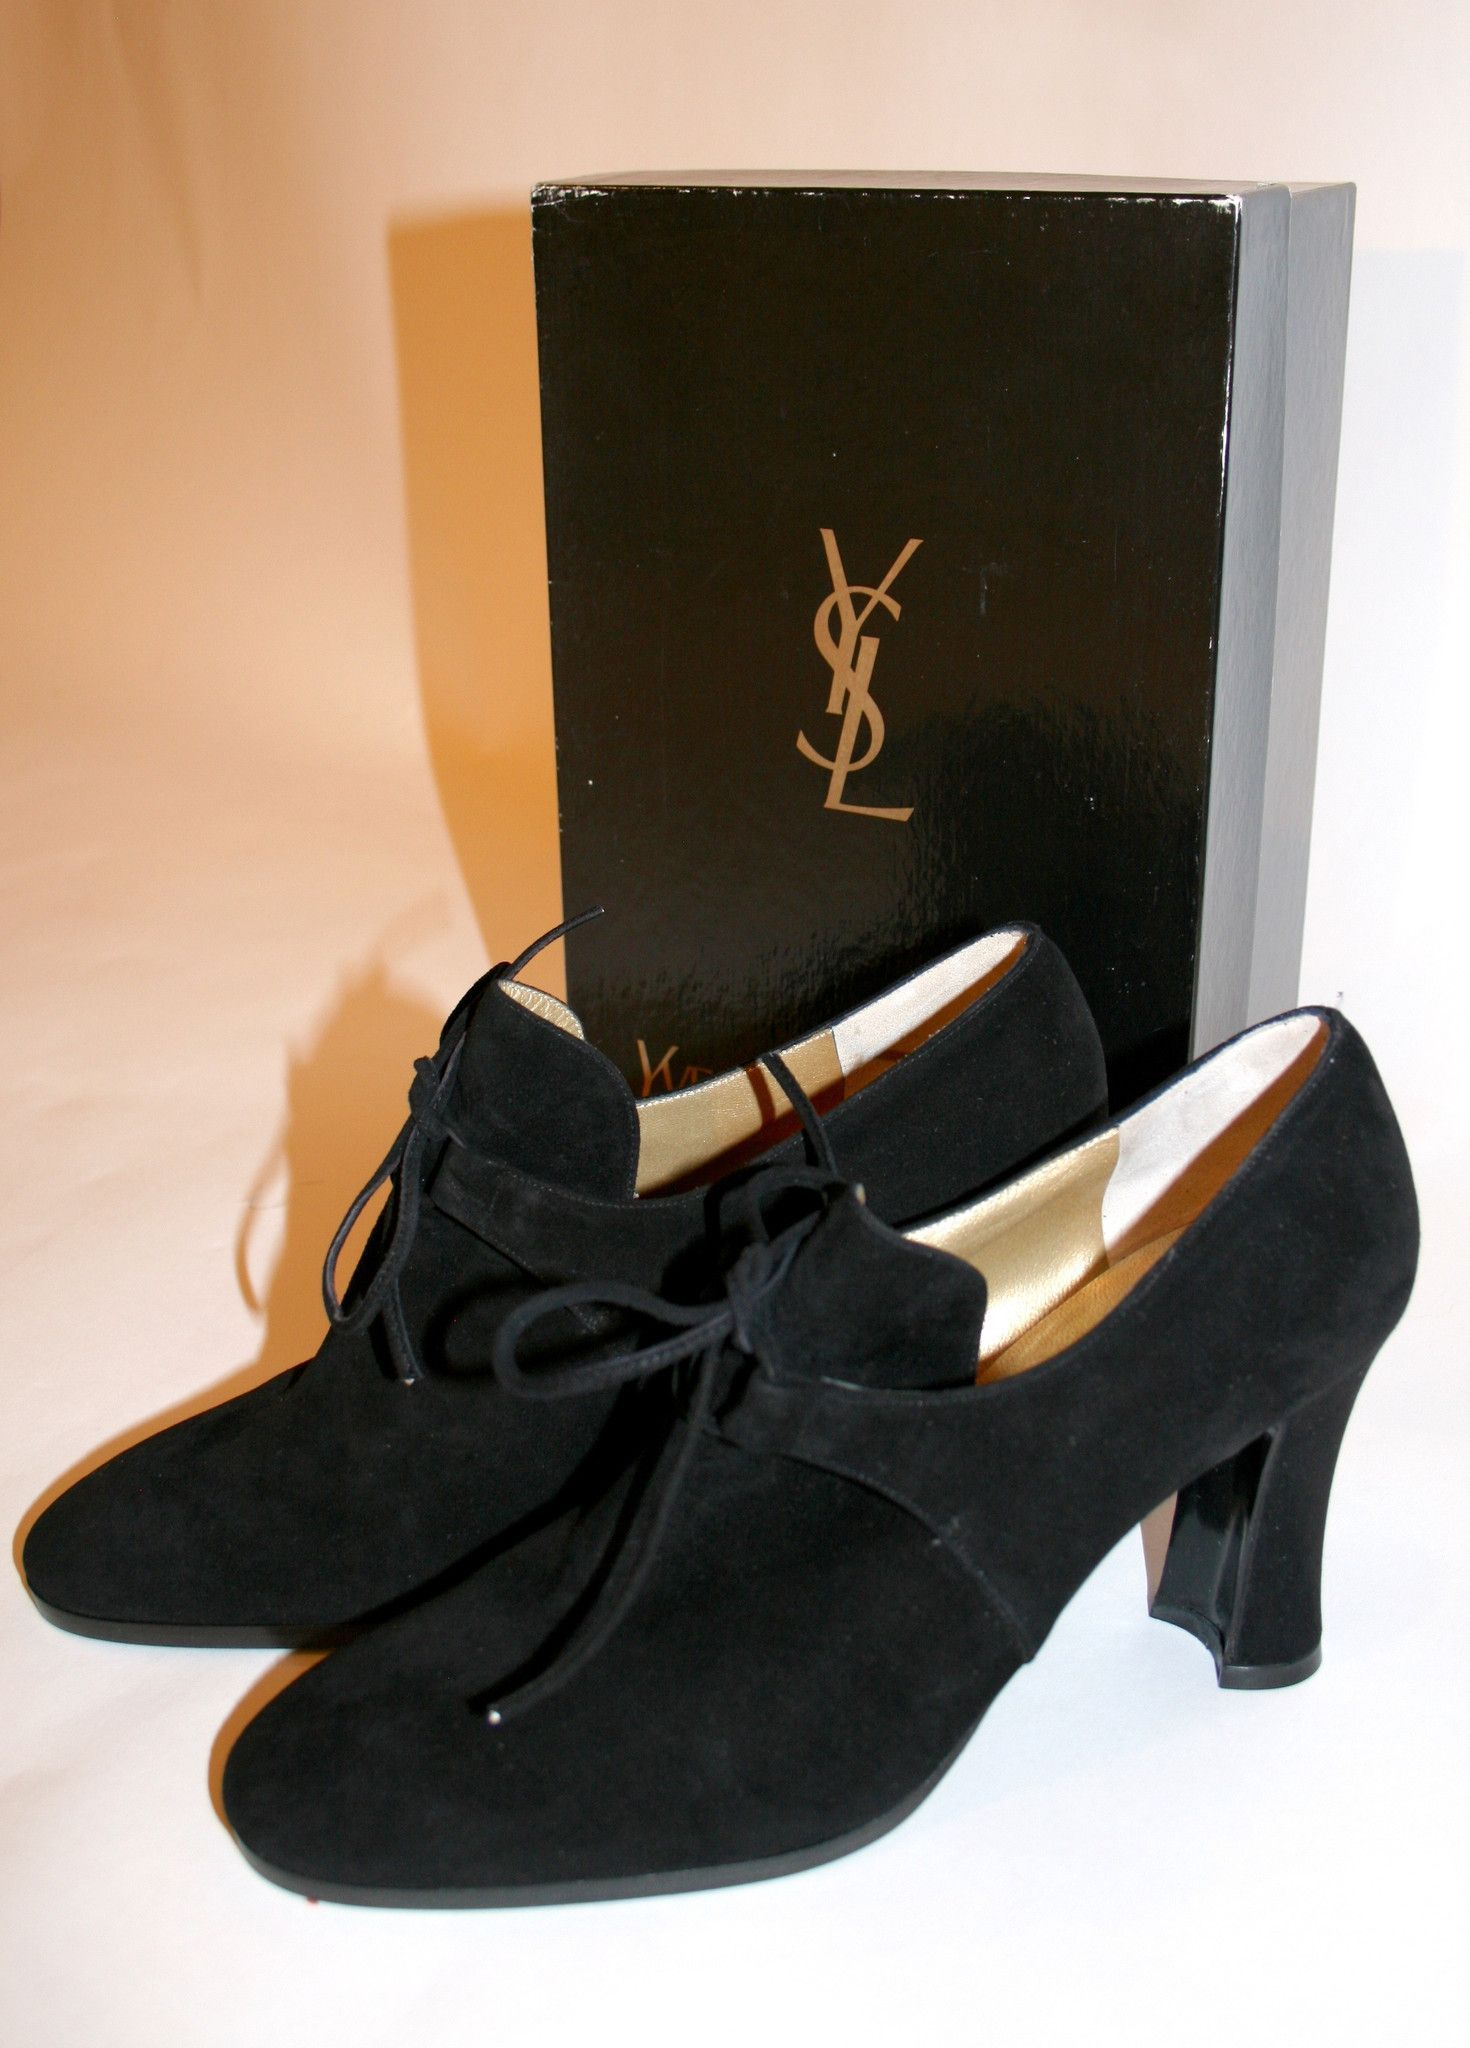 36c232c24 Vintage YSL Suede Shoes | do/look | Shoes, Suede shoes, Ysl